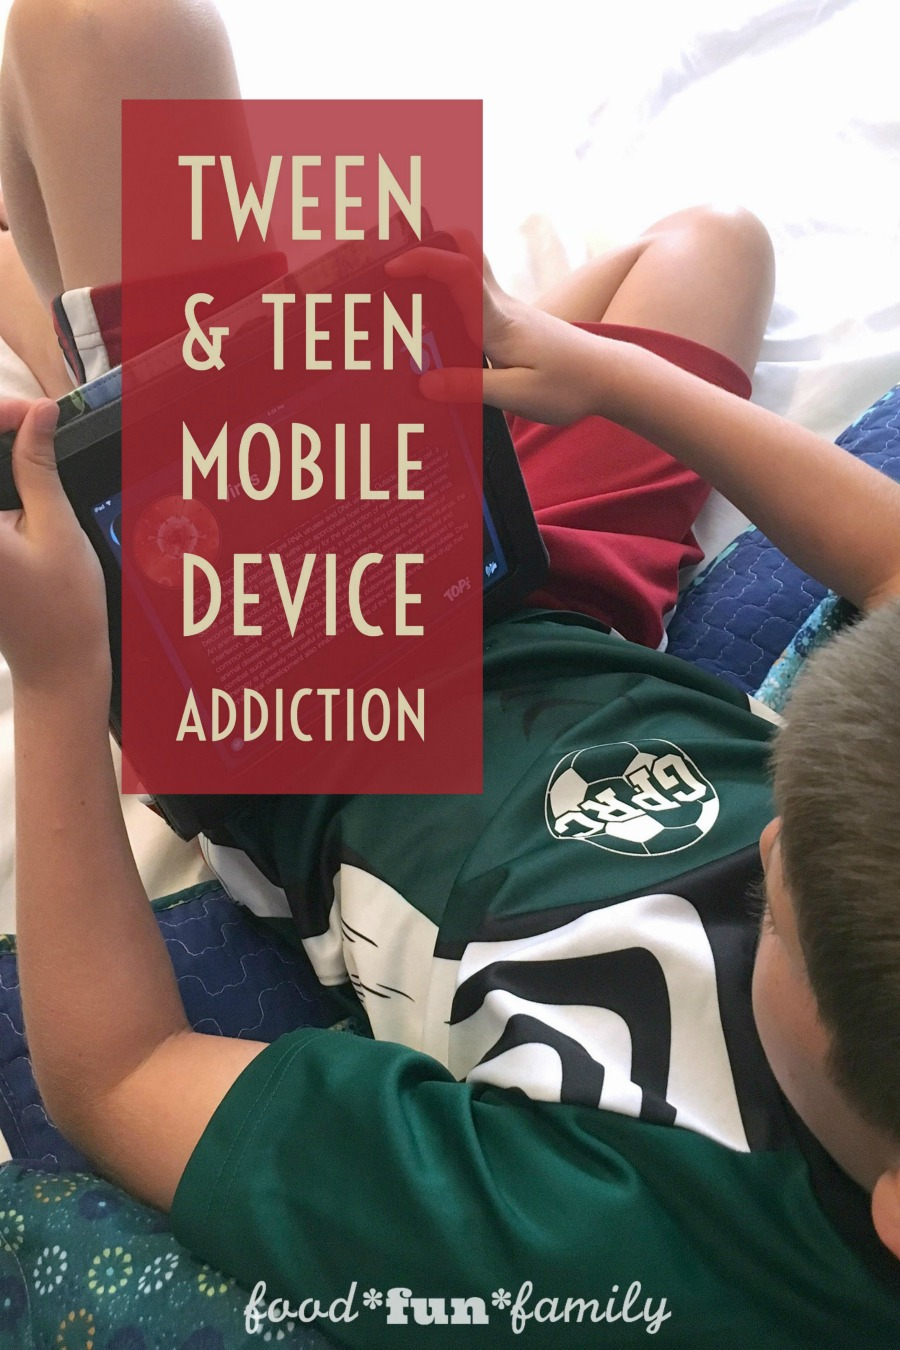 Tween & teen mobile device addition - it's a growing problem, but there are things that parents and kids can do together to combat it